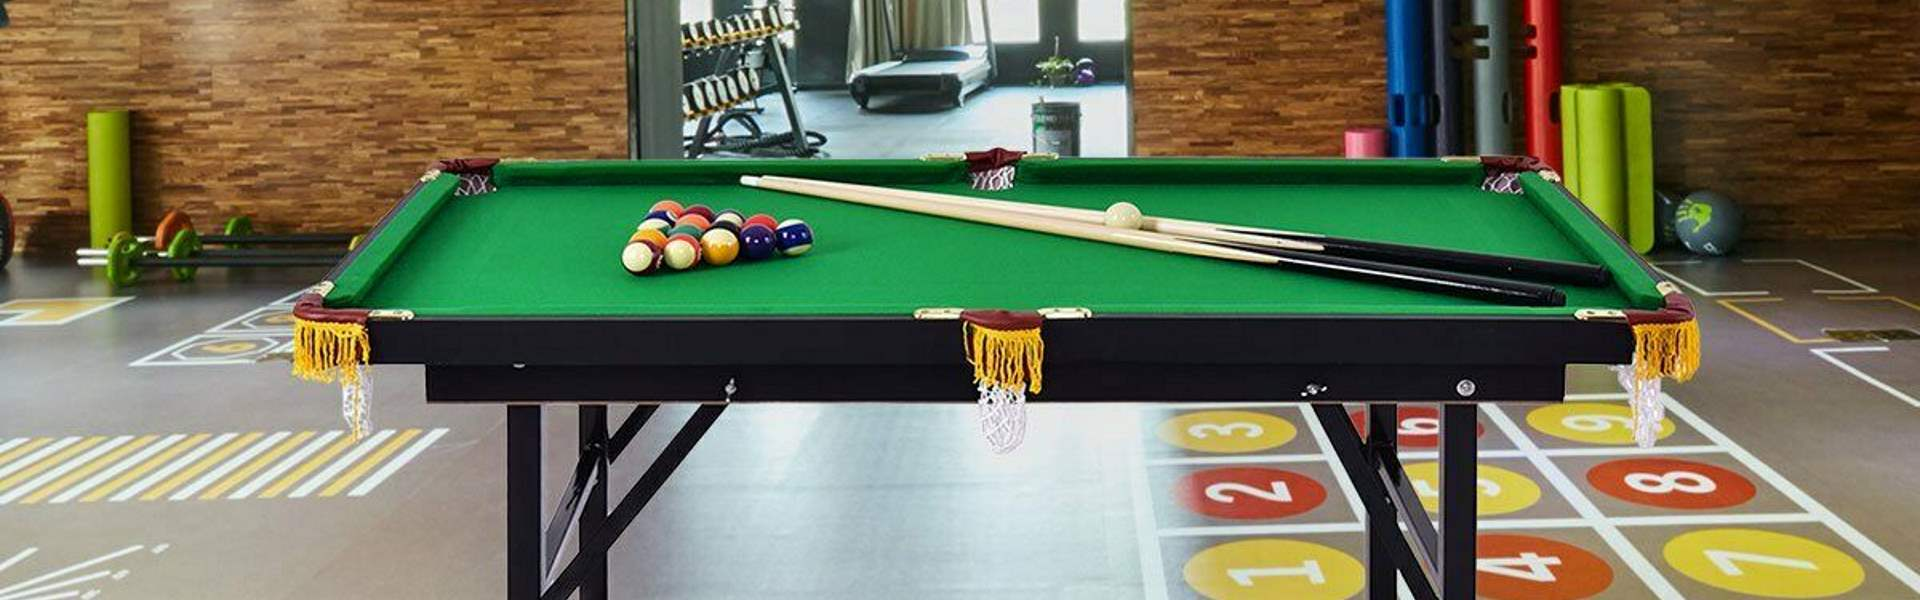 Best Pool Tables Thoroughly Reviewed in Detail